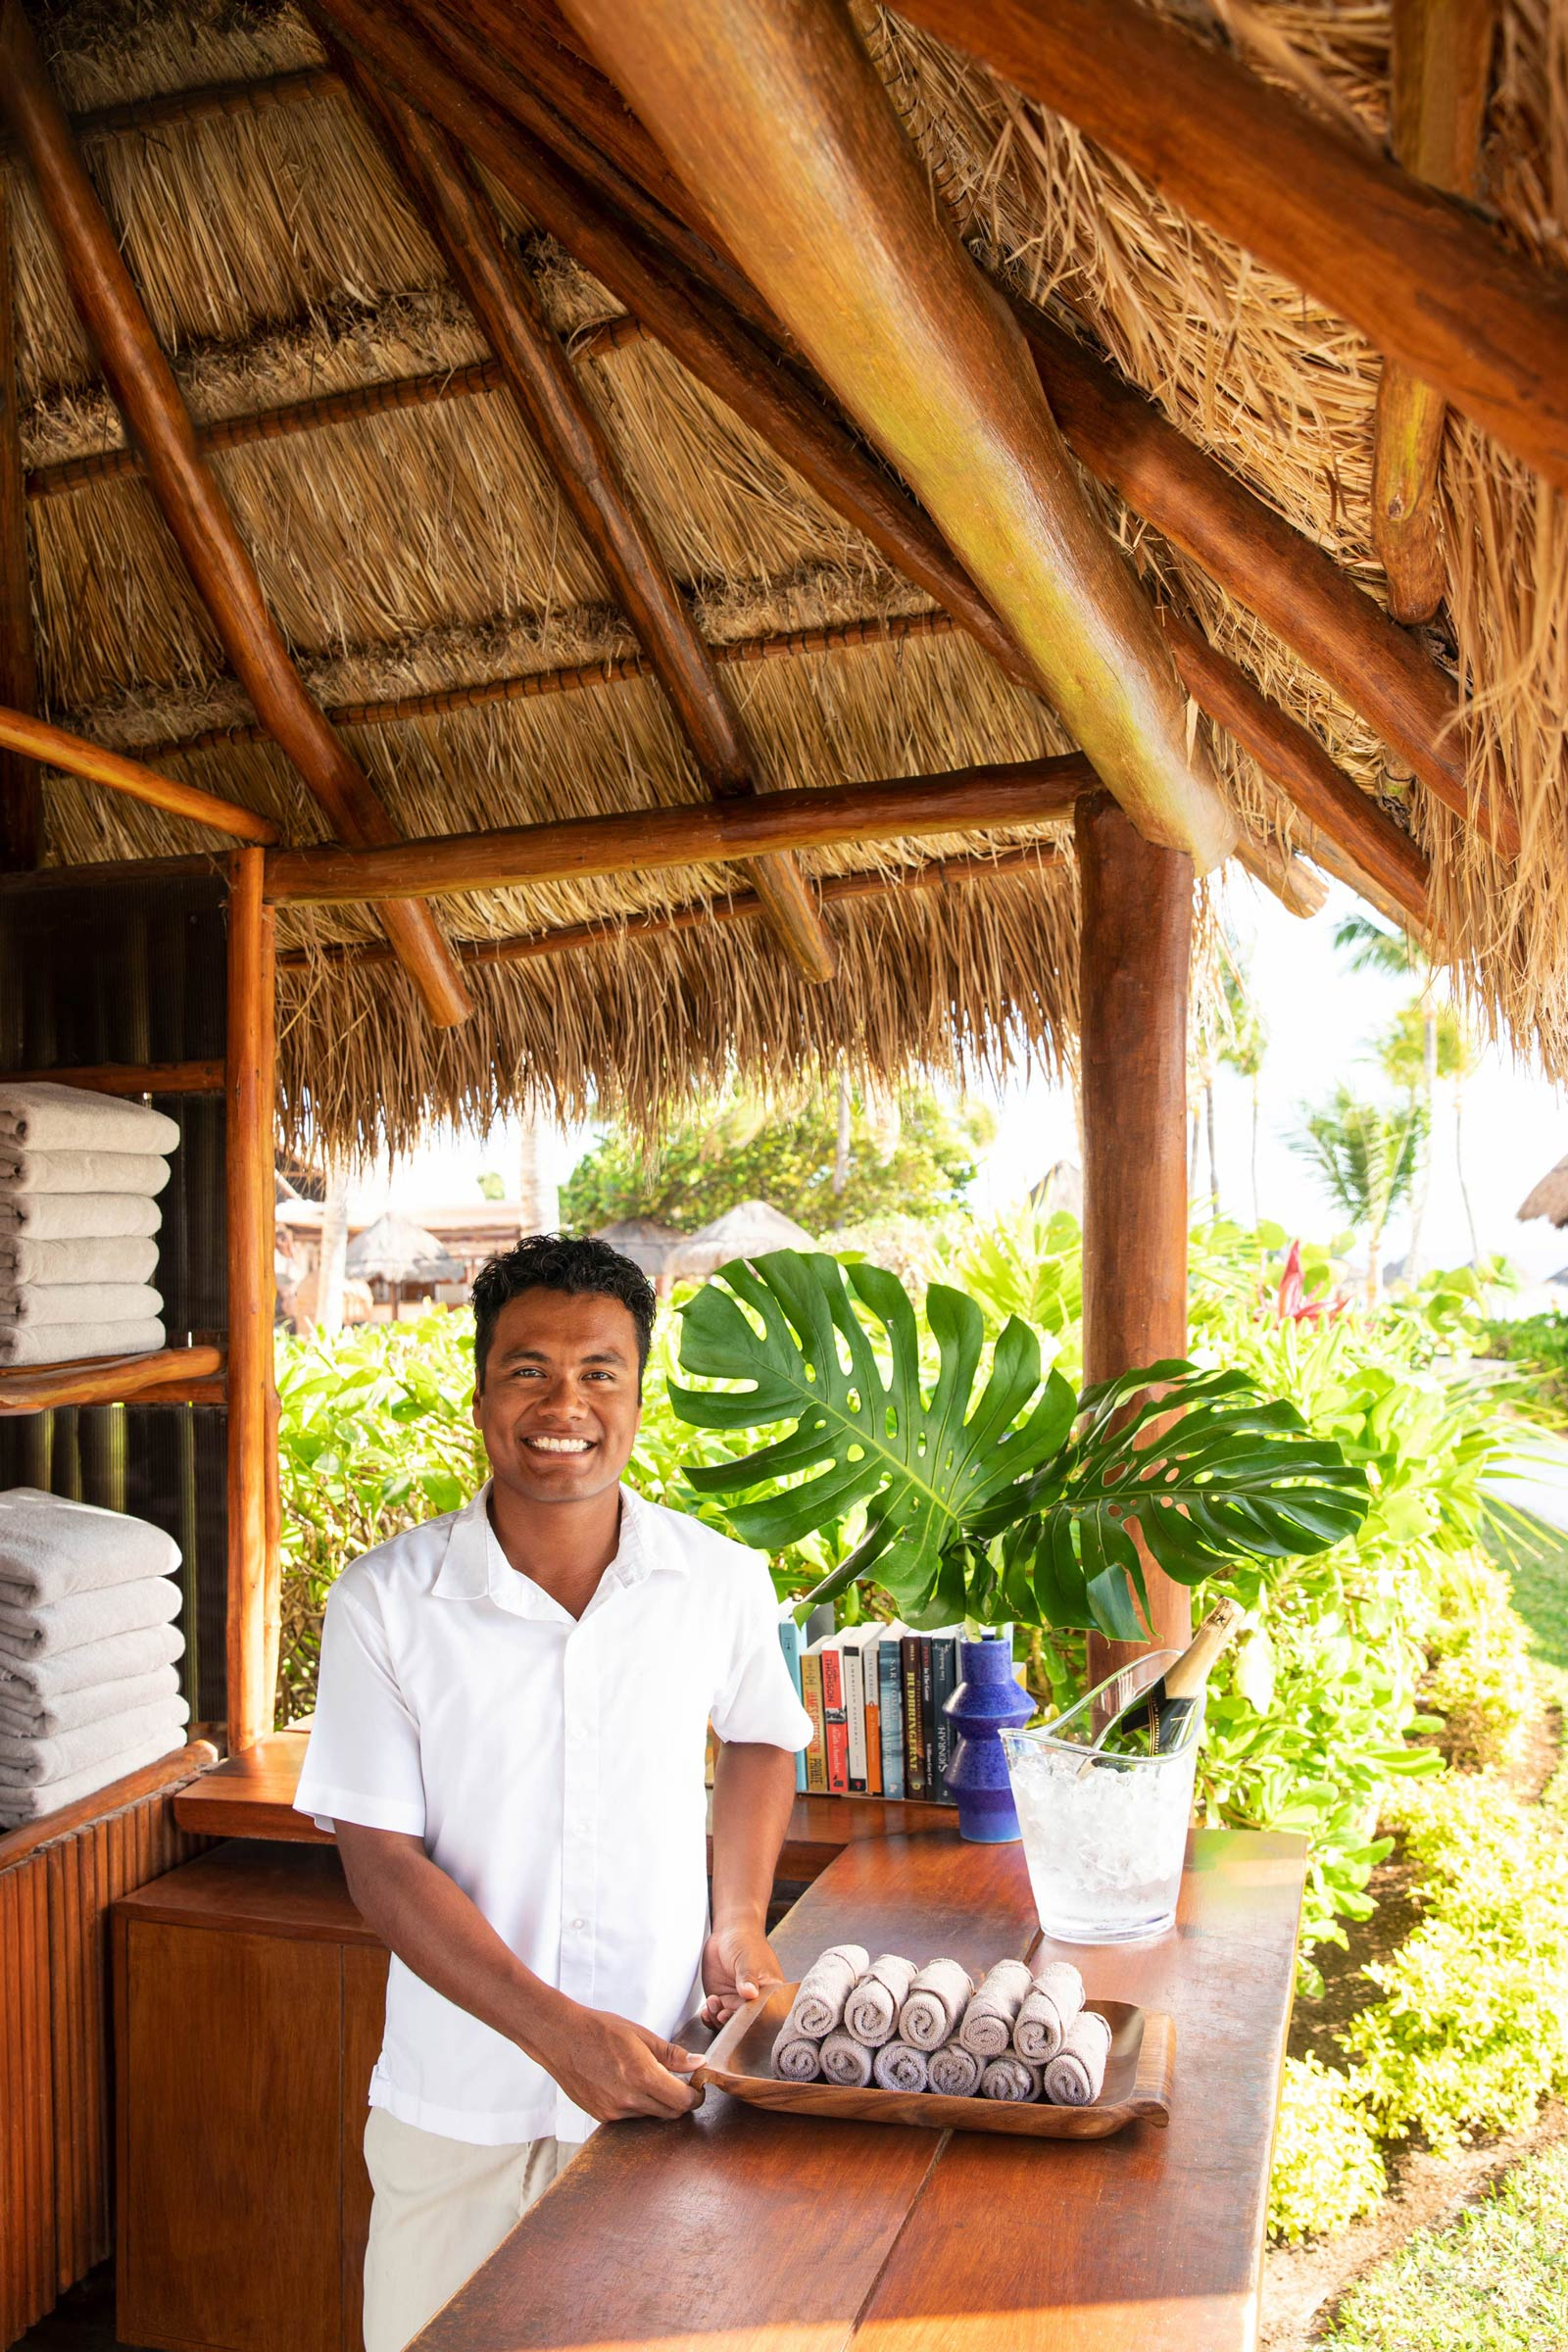 Luxury Beach Hotel Concierge in the Riviera Maya